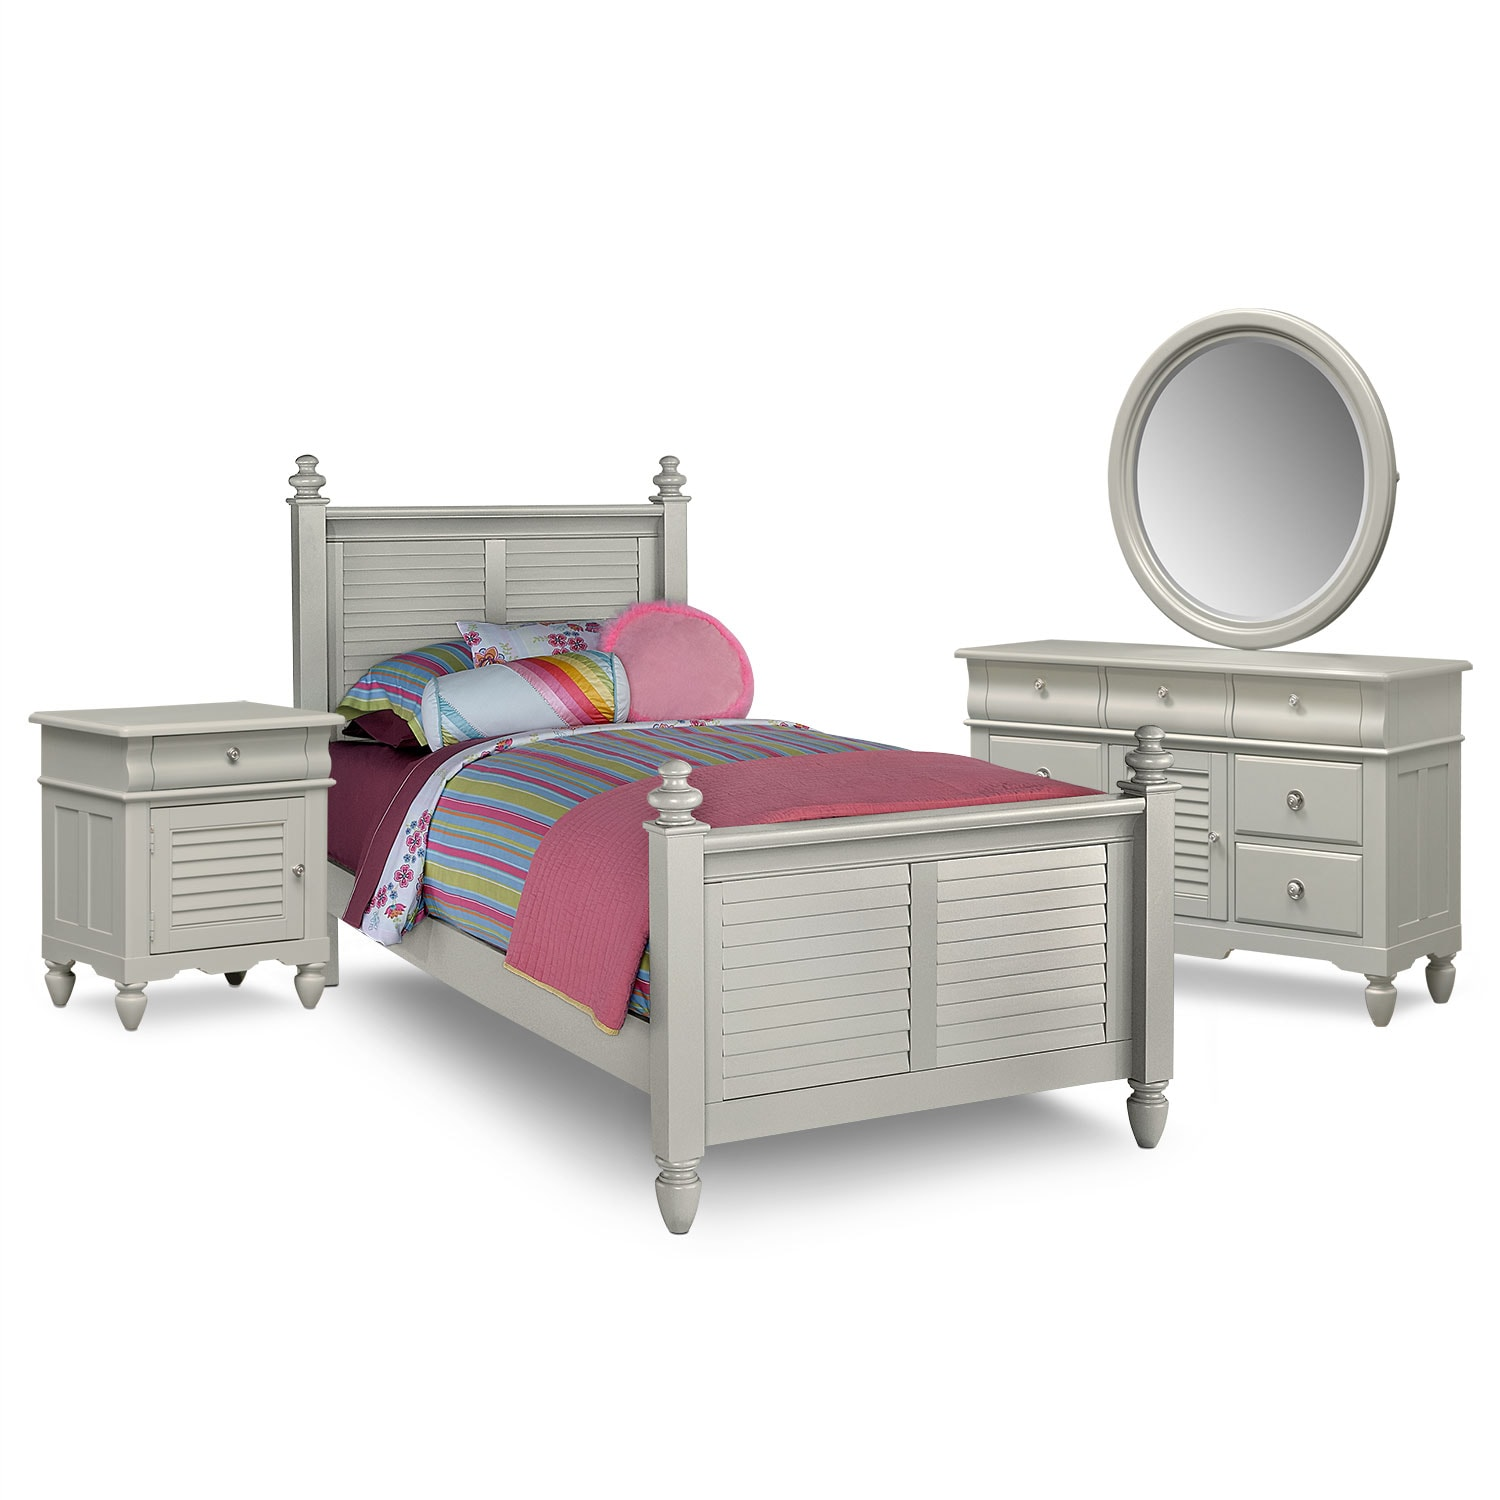 Kids Furniture - Seaside 6-Piece Full Bedroom Set - Gray